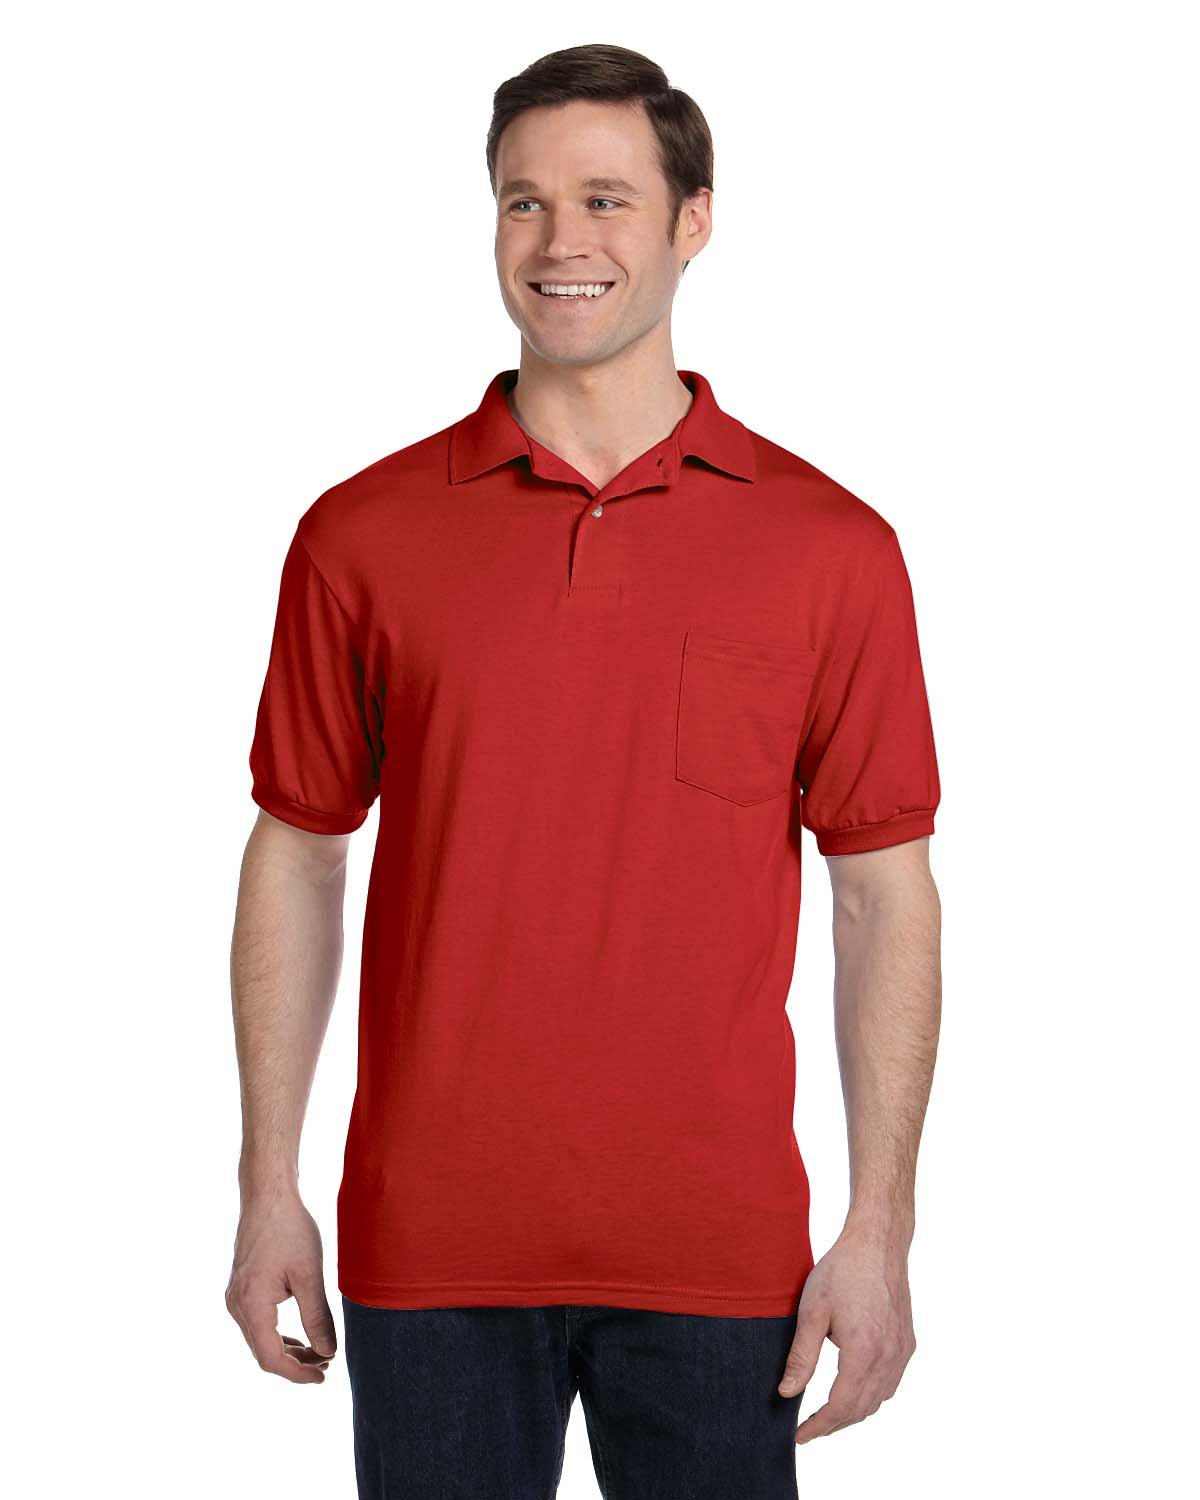 Hanes SHIRT メンズ B005GR0TZI 2XL US (Chest 50-52)|Deep Red Deep Red 2XL US (Chest 50-52)